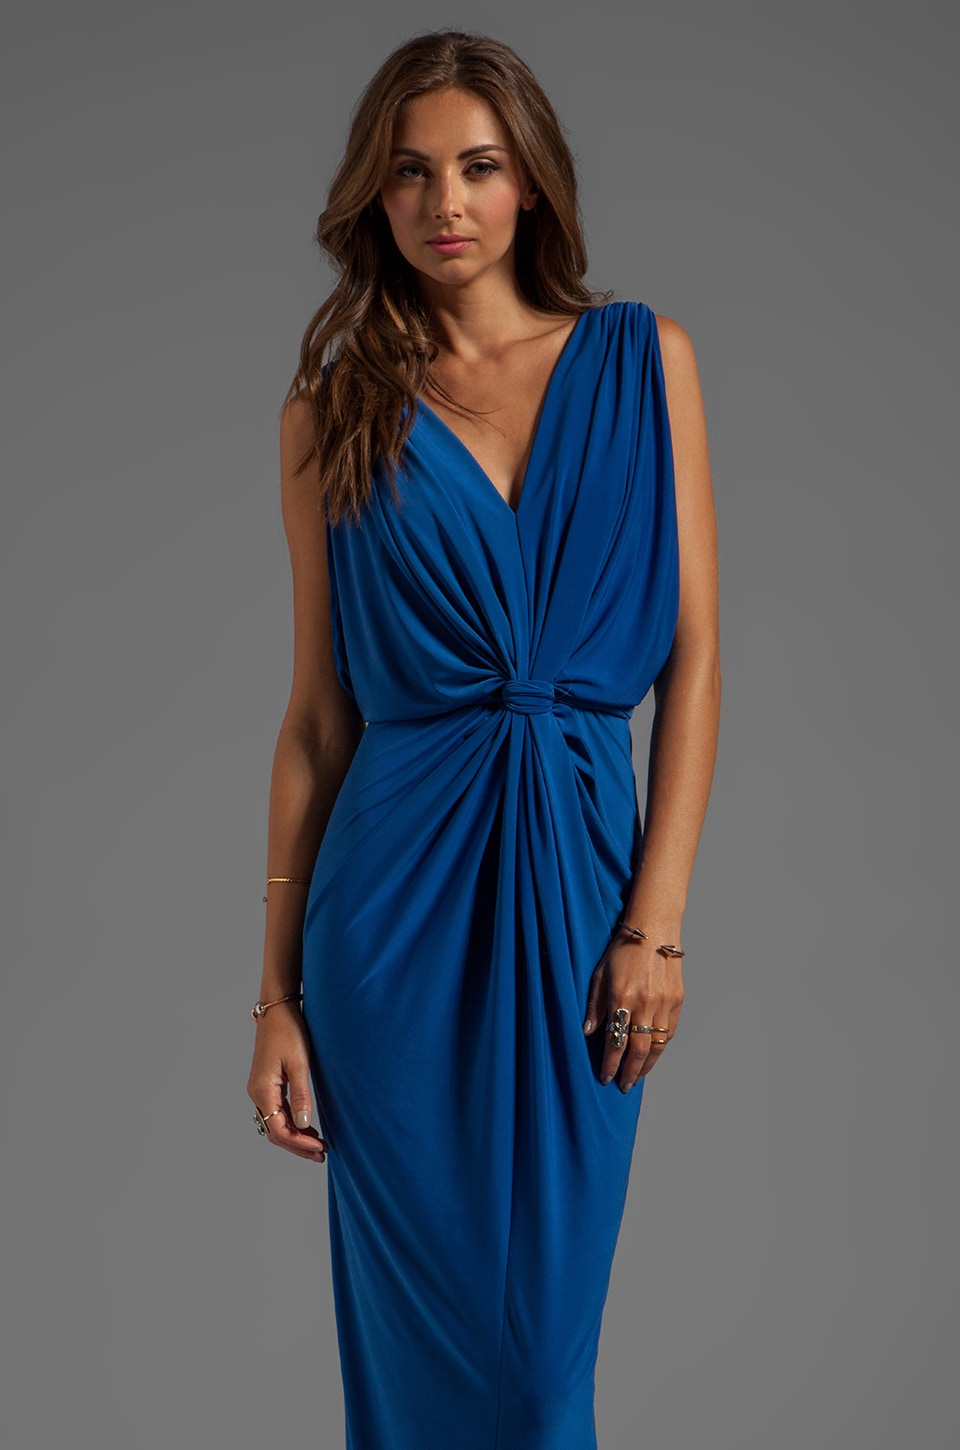 T-Bags LosAngeles Draped Sleeve Maxi Dress in Royal